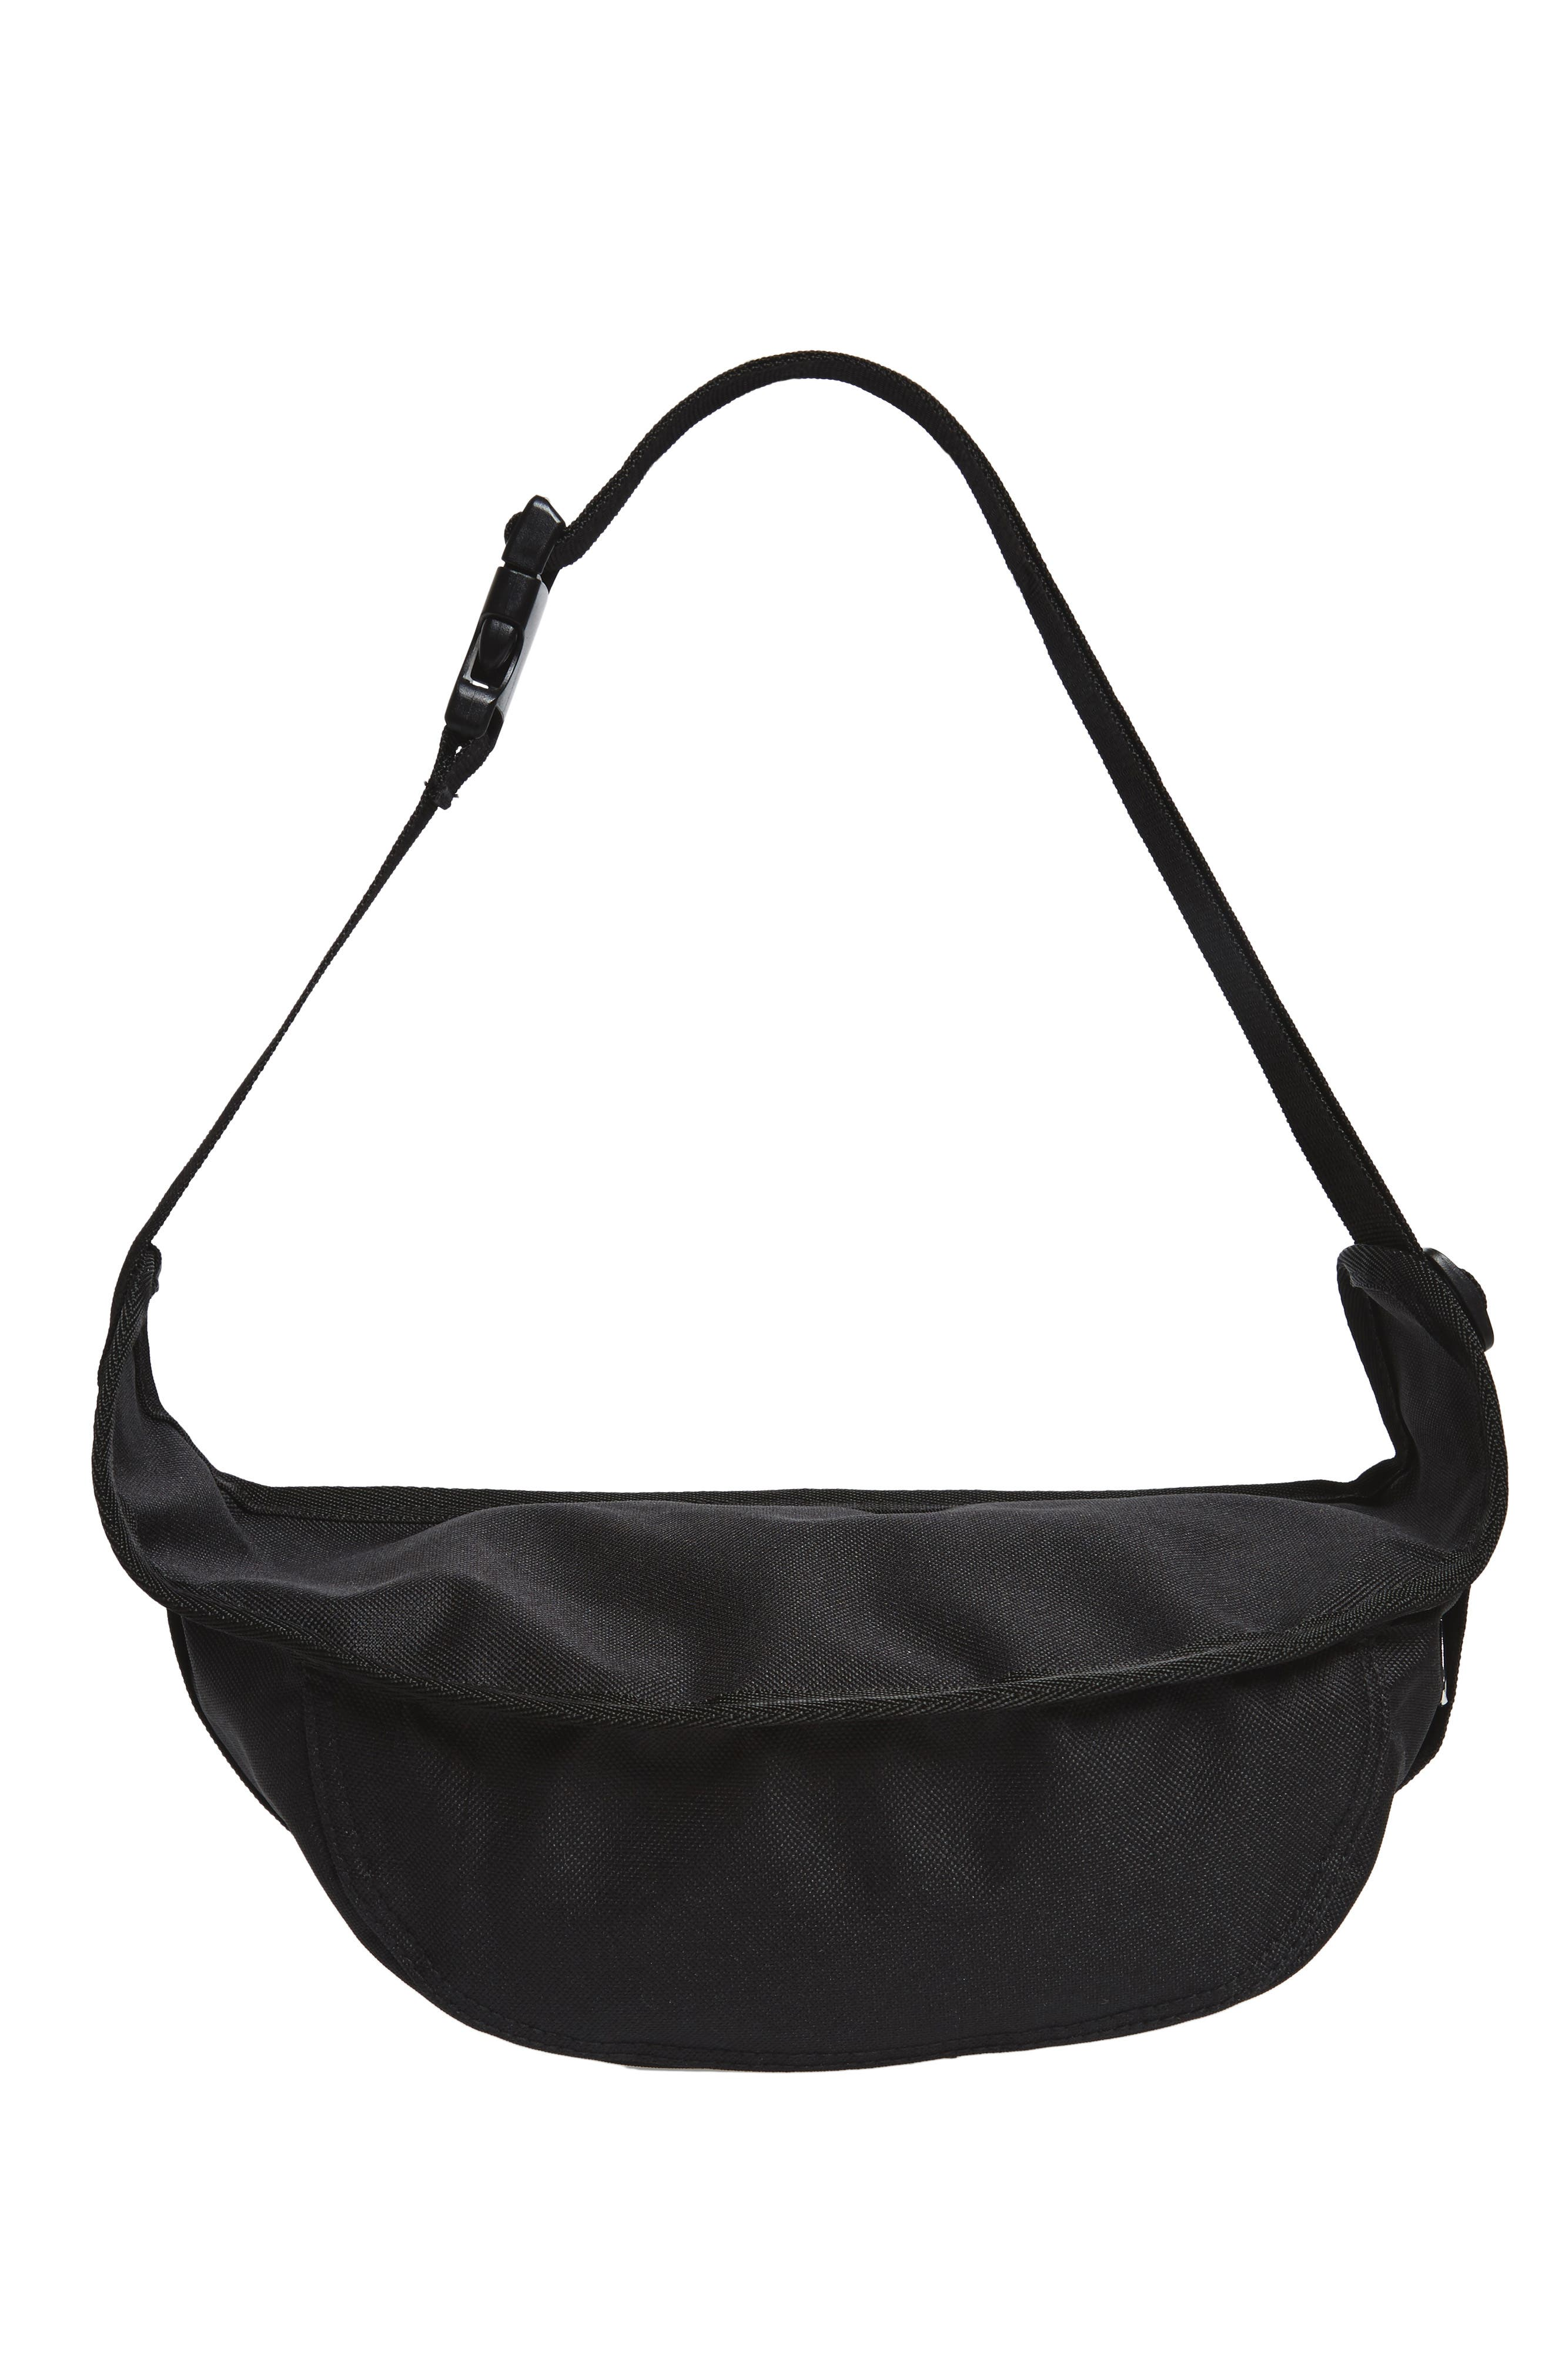 Drop Out Sling Bag,                             Alternate thumbnail 7, color,                             001